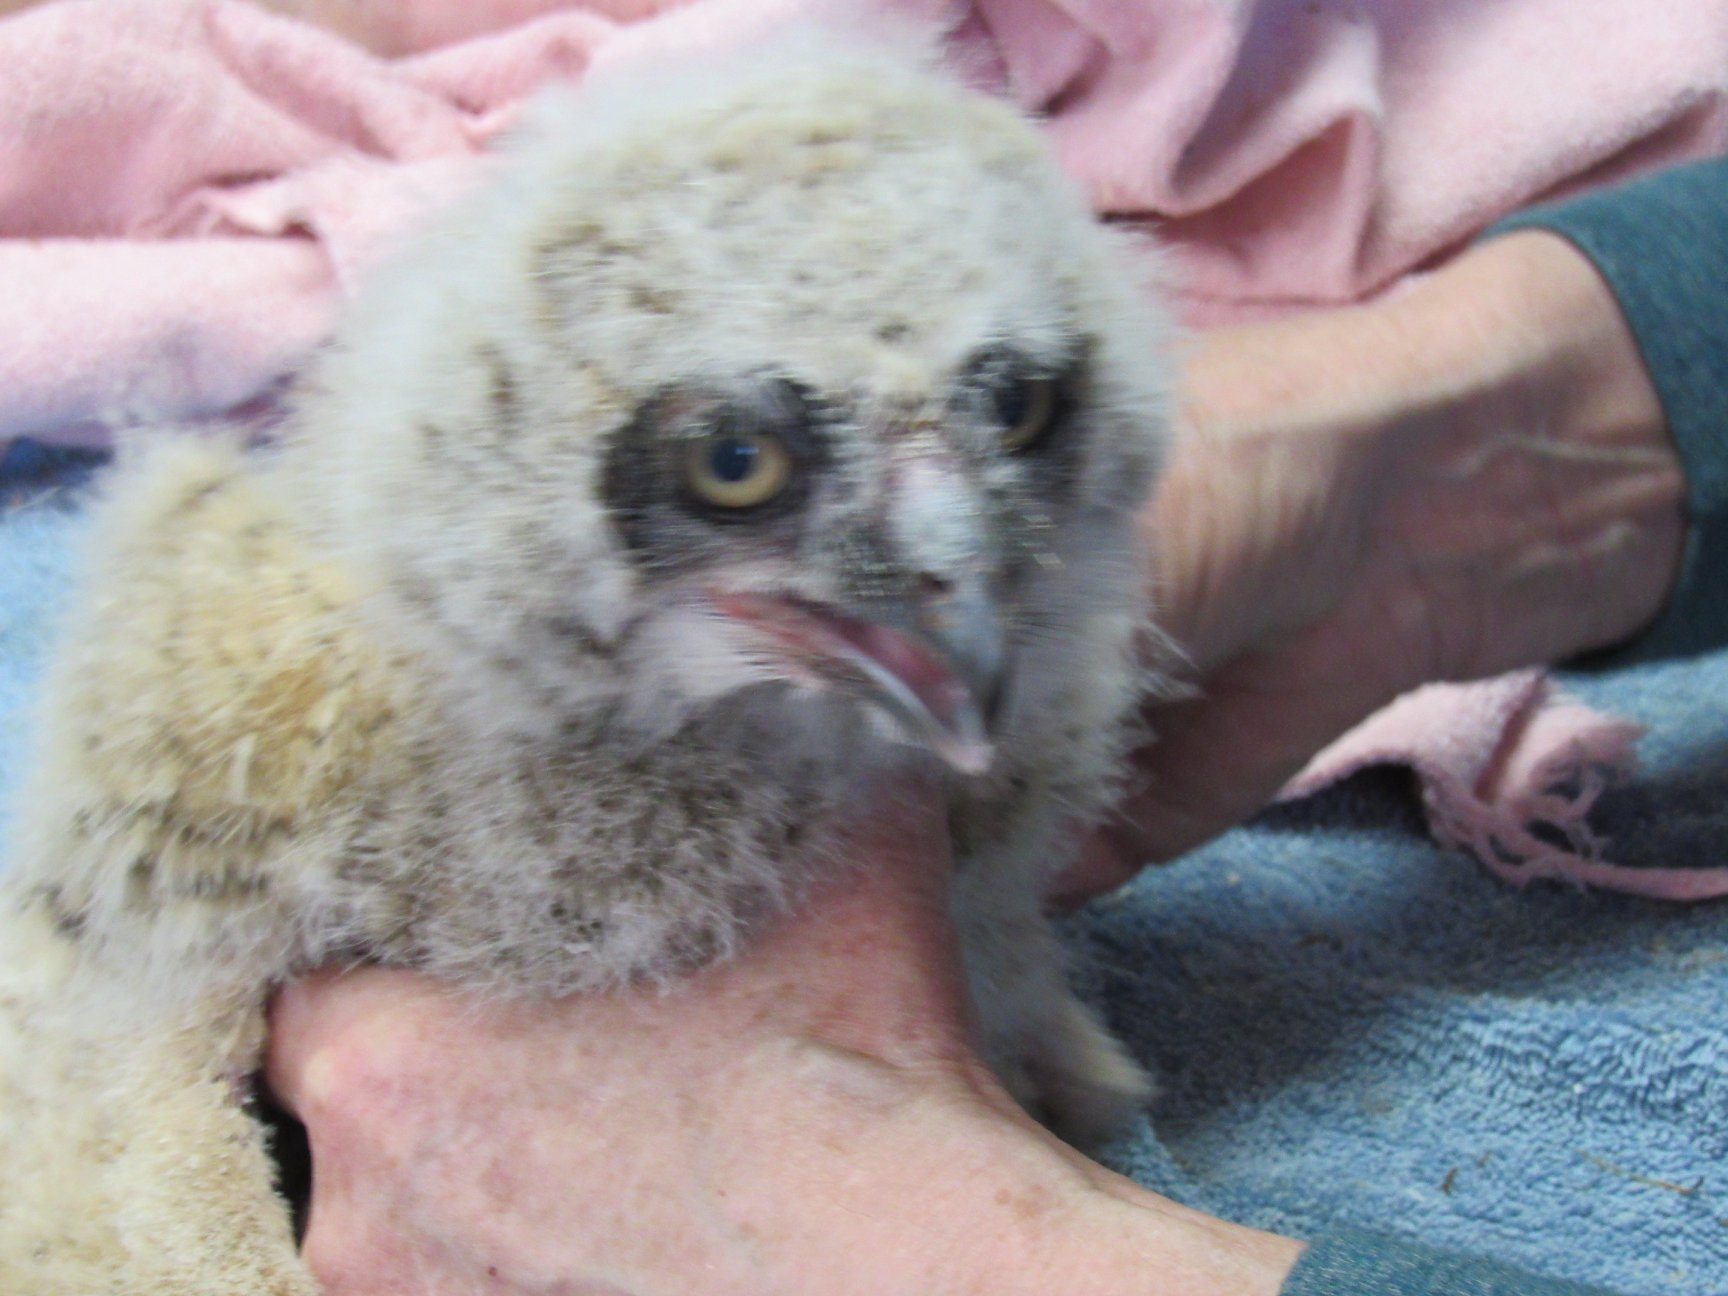 Exam of the owlet found he was injured and bleeding into his abdomen after the long fall from his nest.